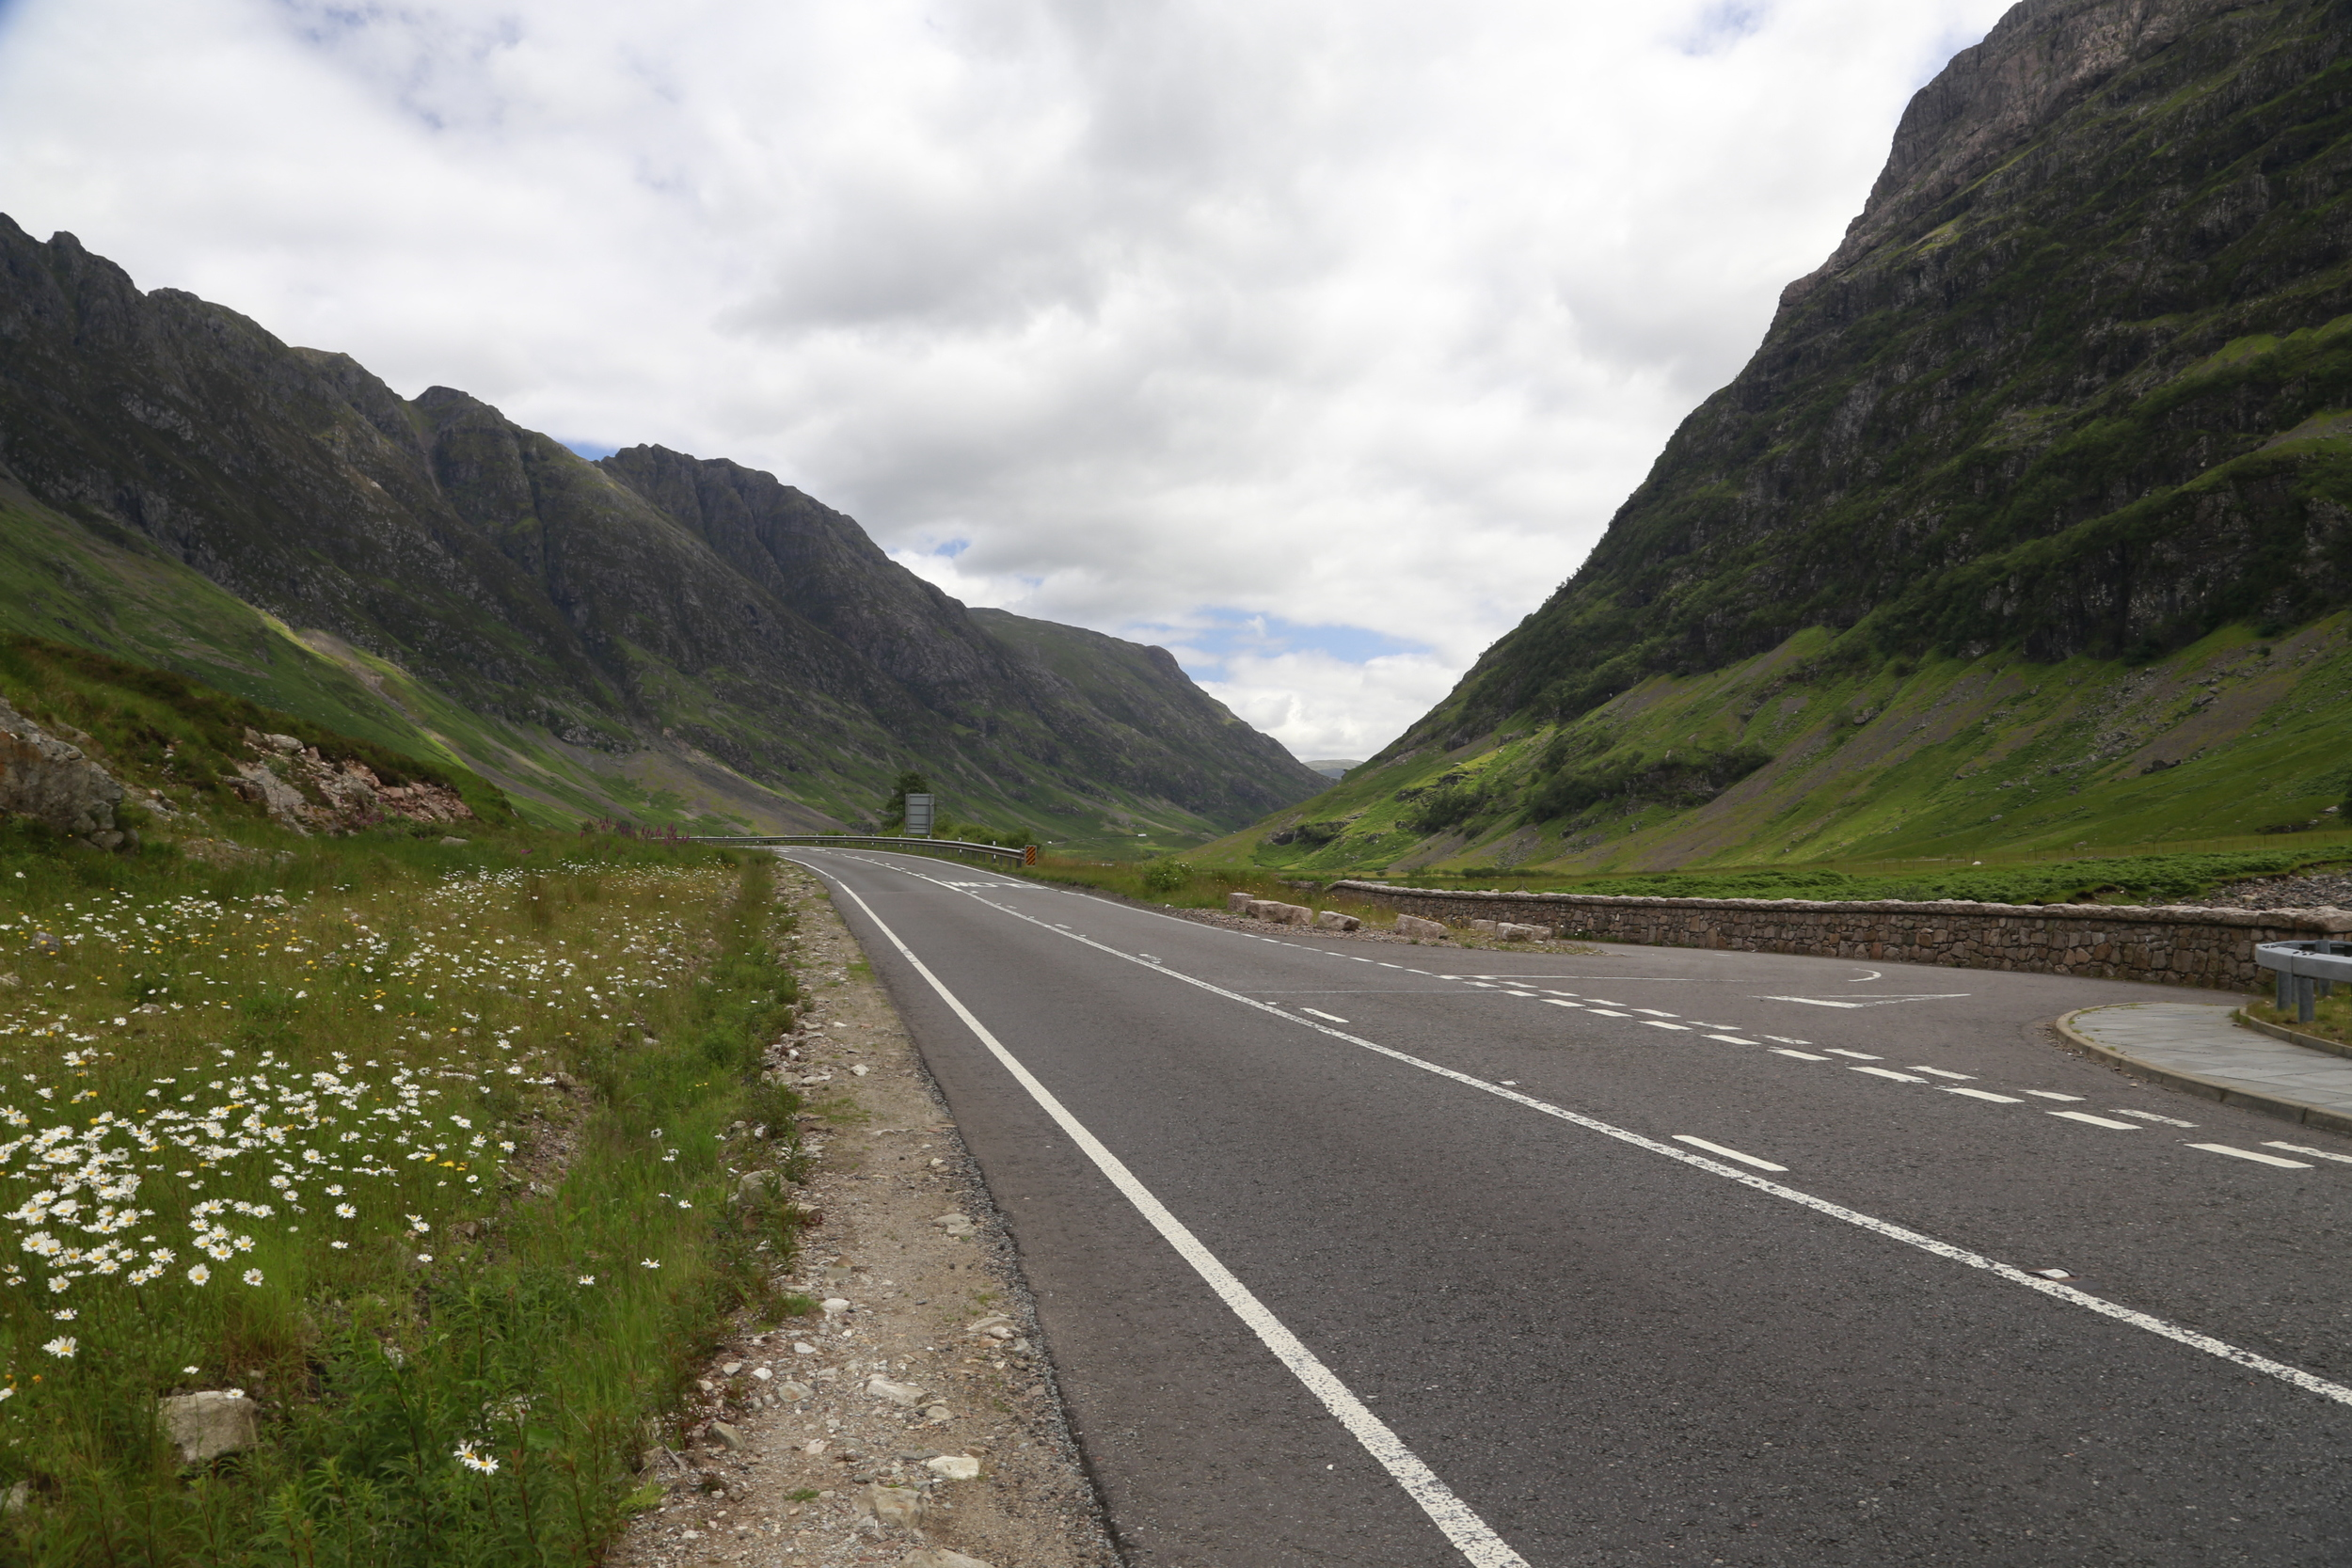 glen coe,  touring bicycles, road bicycle, cycling holidays, bike tour, road cycling, bike trails,